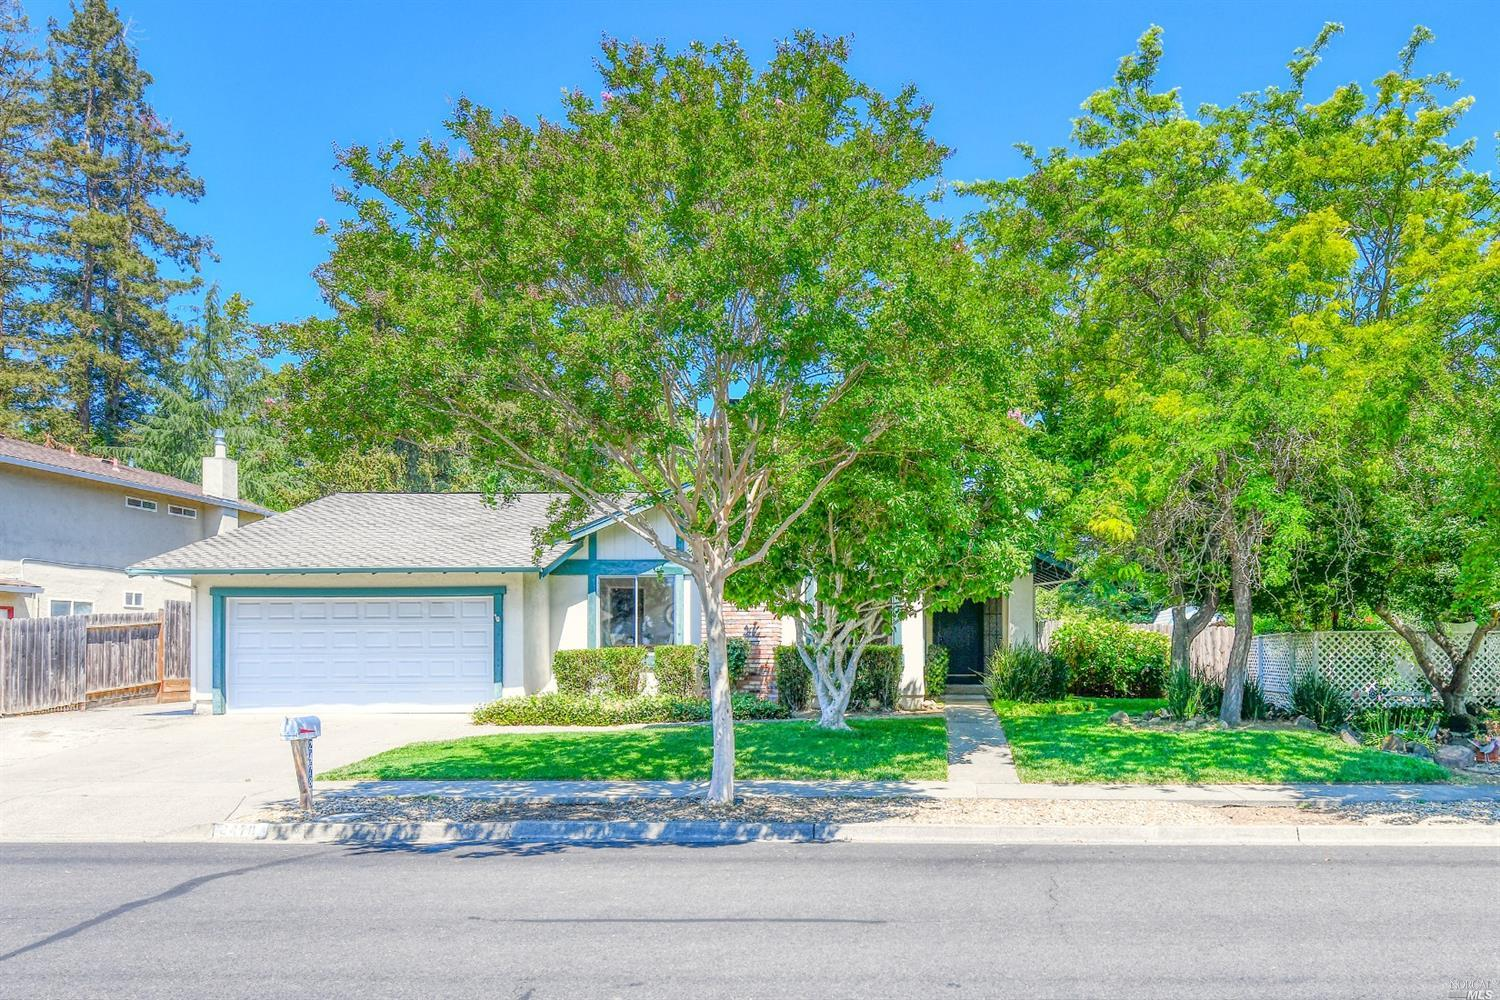 Wonderful neighborhood of North West Napa offering this 4 bedroom and 2 bath single level home on a